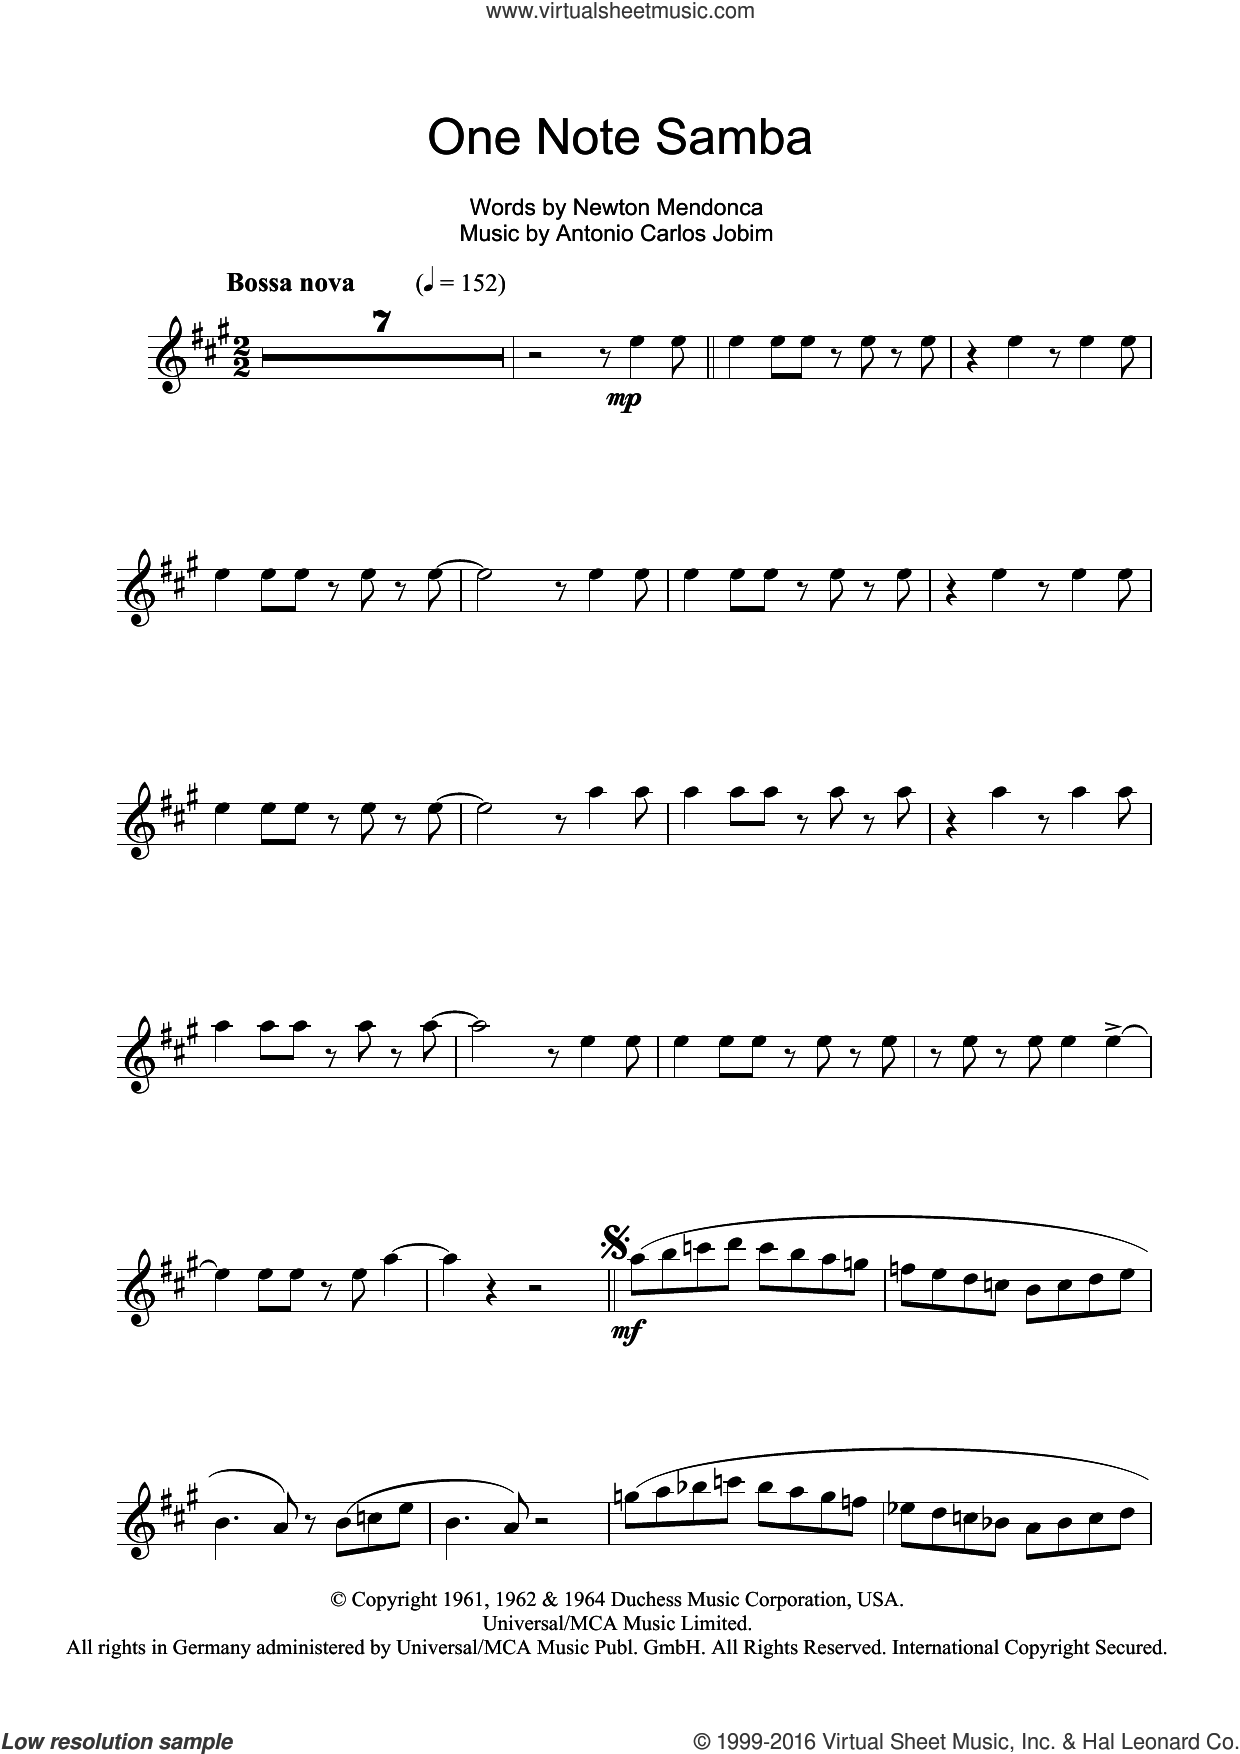 One Note Samba (Samba De Uma Nota) sheet music for tenor saxophone solo by Antonio Carlos Jobim and Newton Mendonca, intermediate skill level